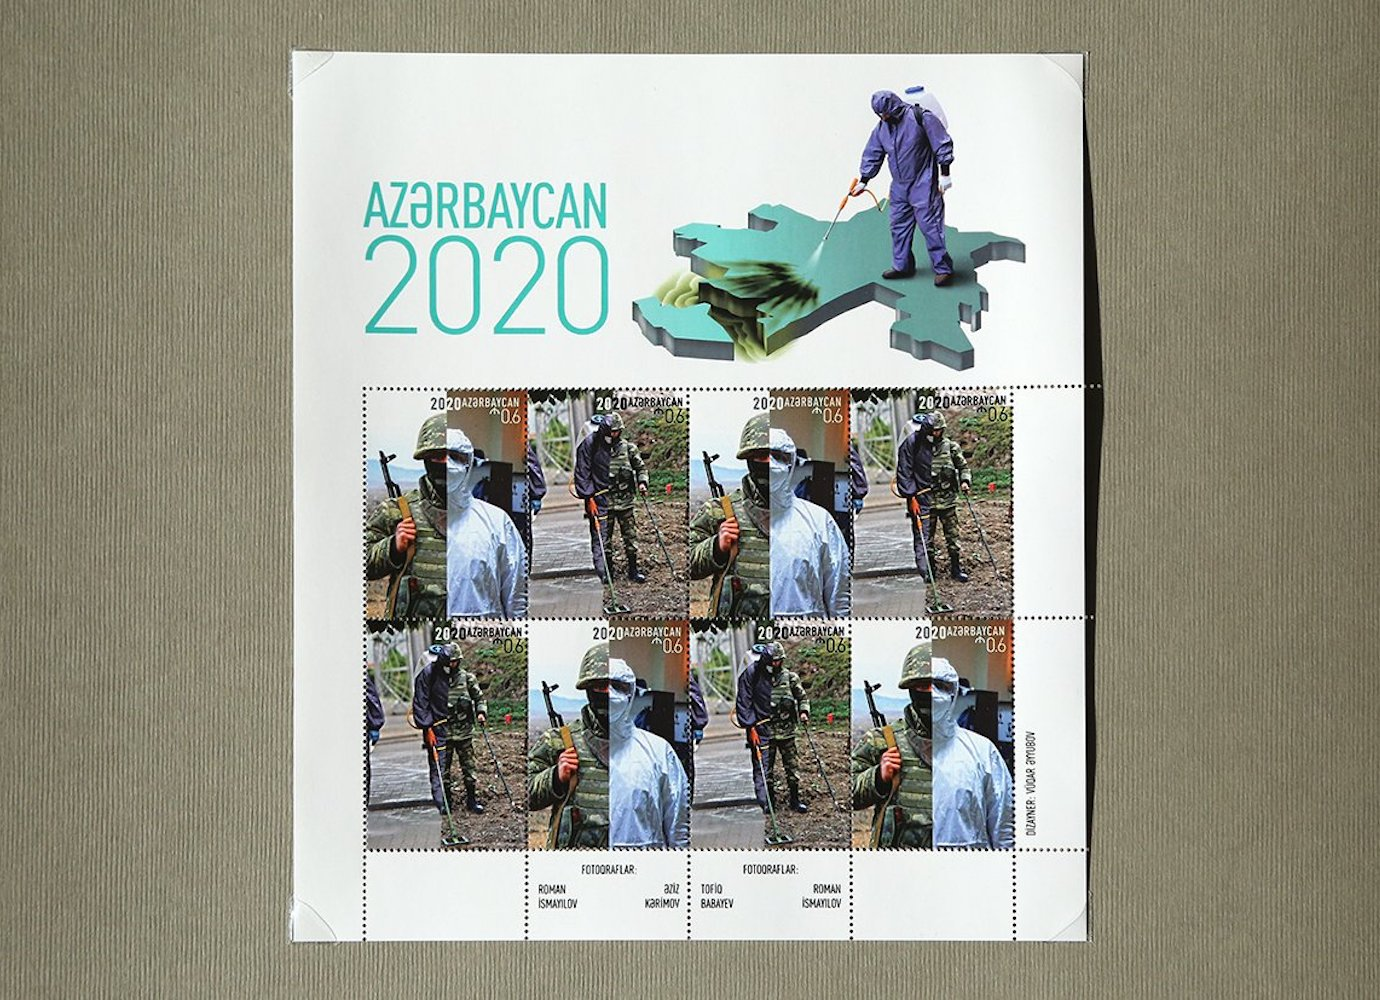 Azerbaijani postal stamps accused of spreading anti-Armenian propaganda